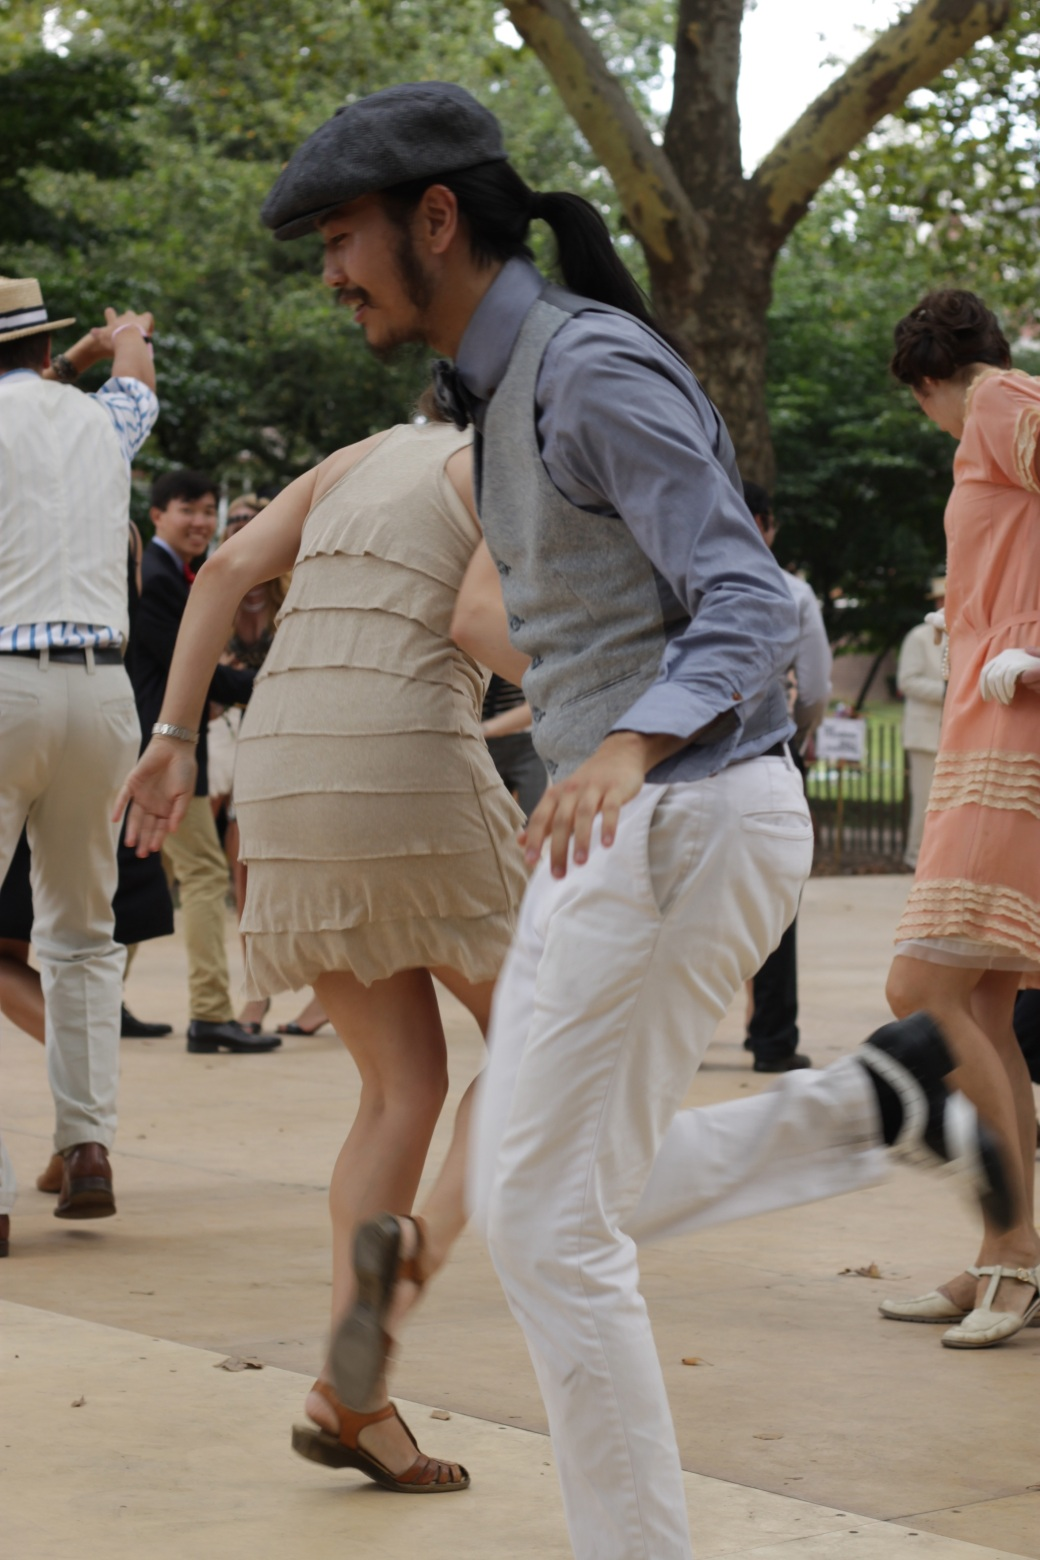 new york city governors island jazz age lawn party august 17 2014 88